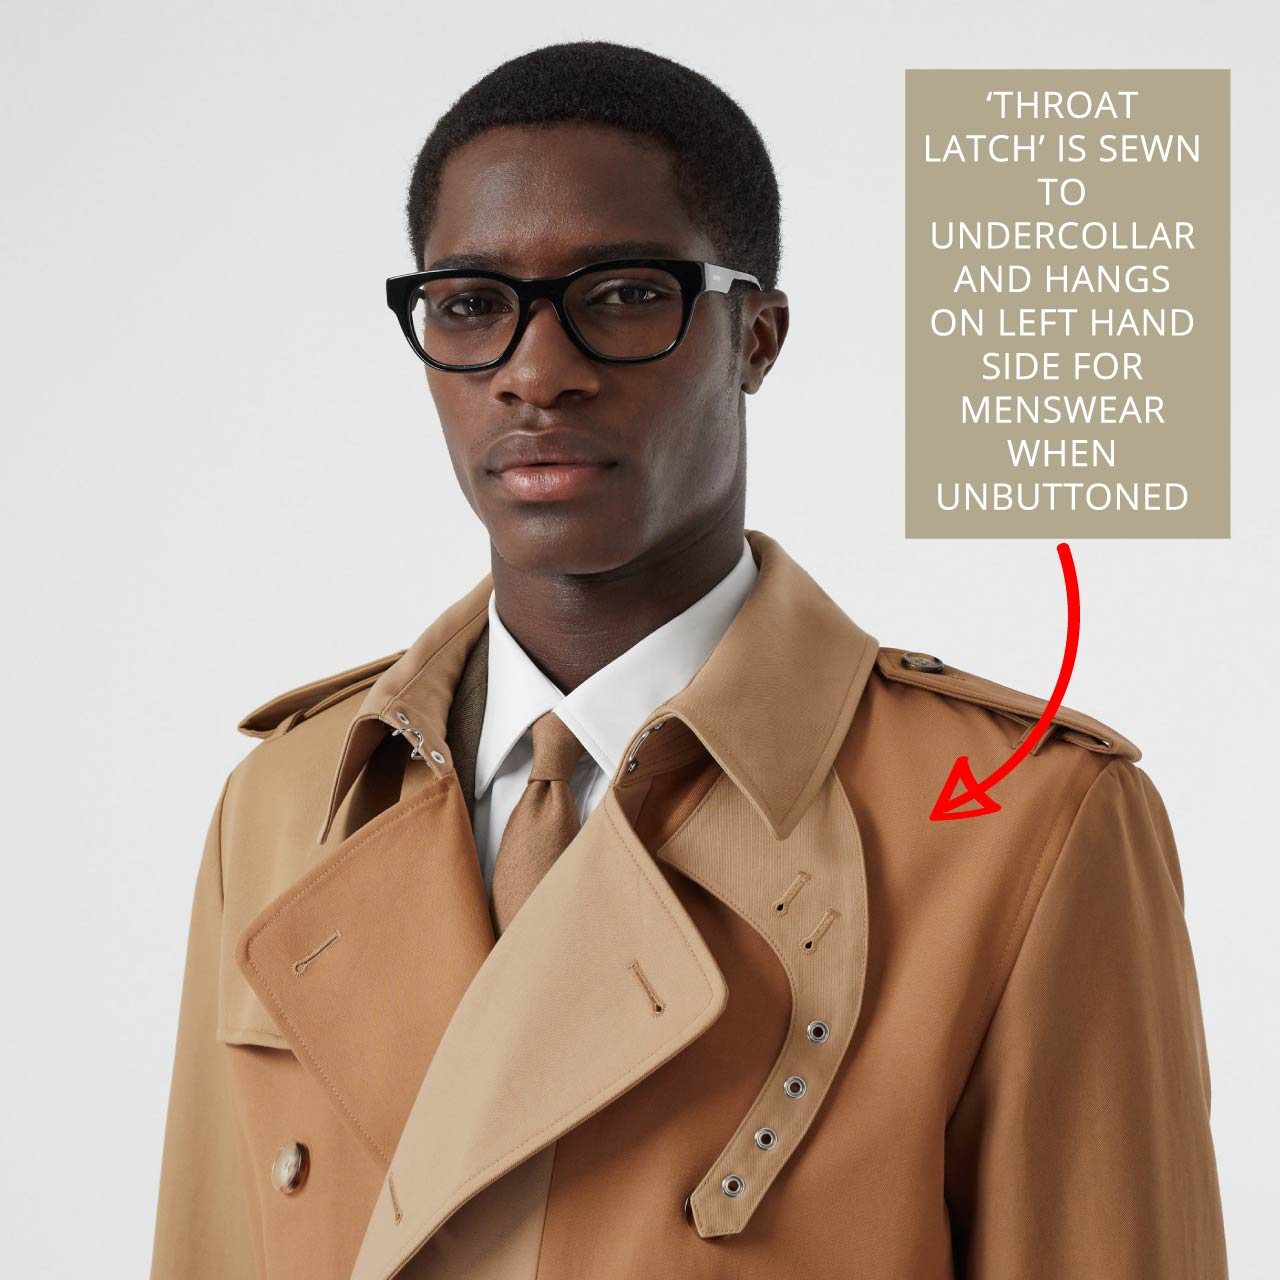 Burberry trench coat with 'throat latch'. Throat latch is sewn to undercollar and hangs on the left hand side for menswear when not in use.